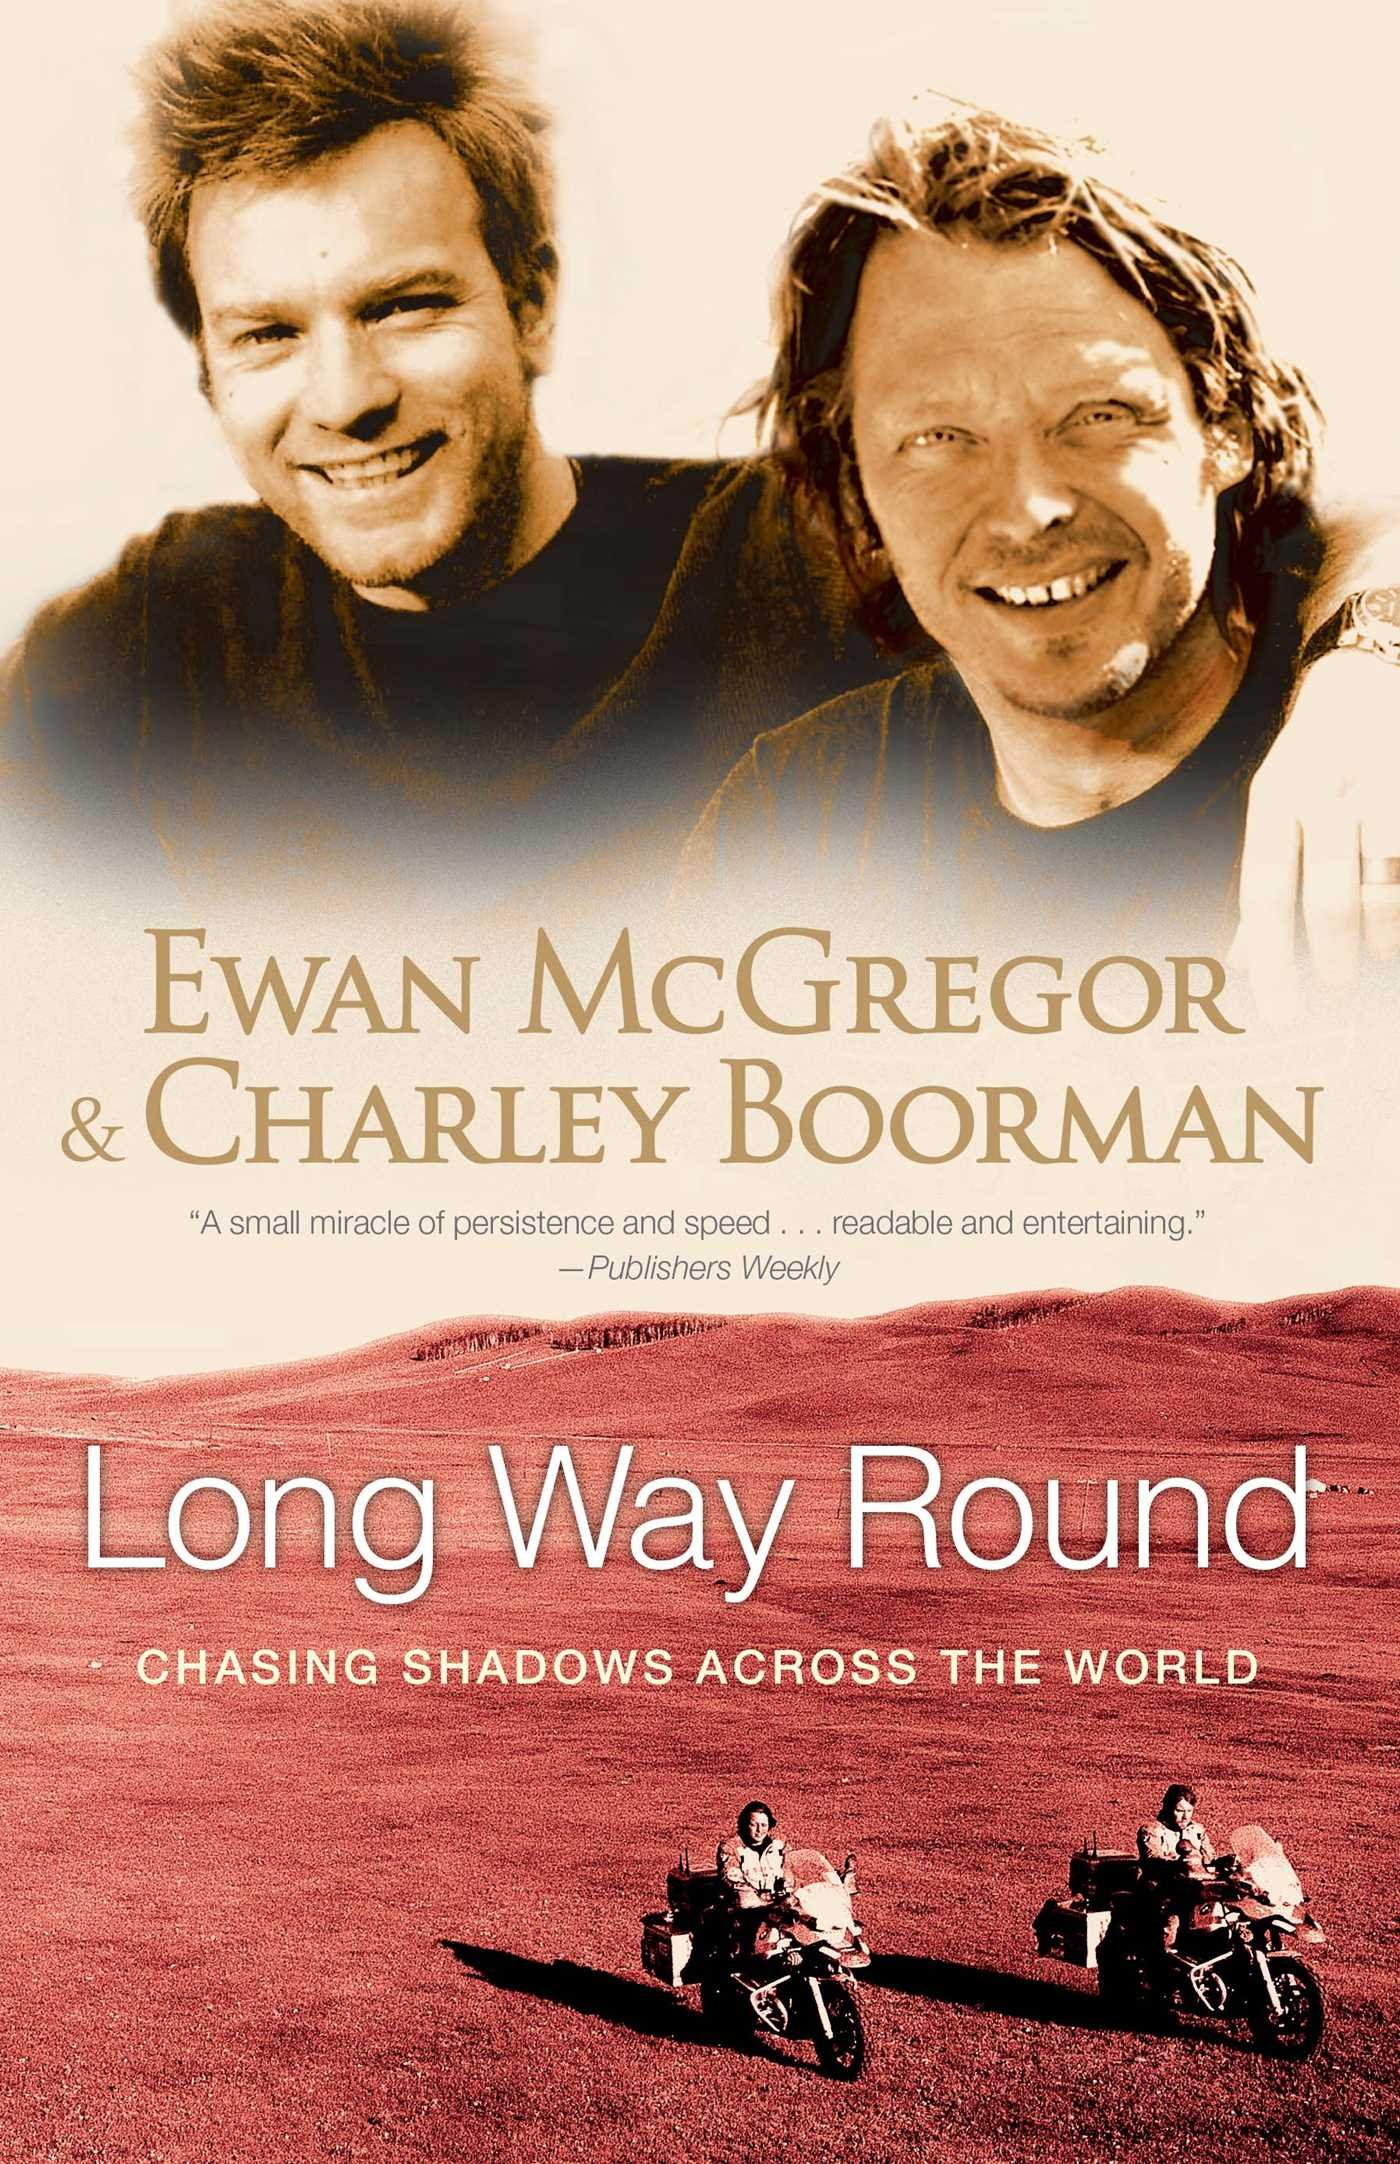 Ewan McGregor and Charley Boorman in Long Way Round (2004)